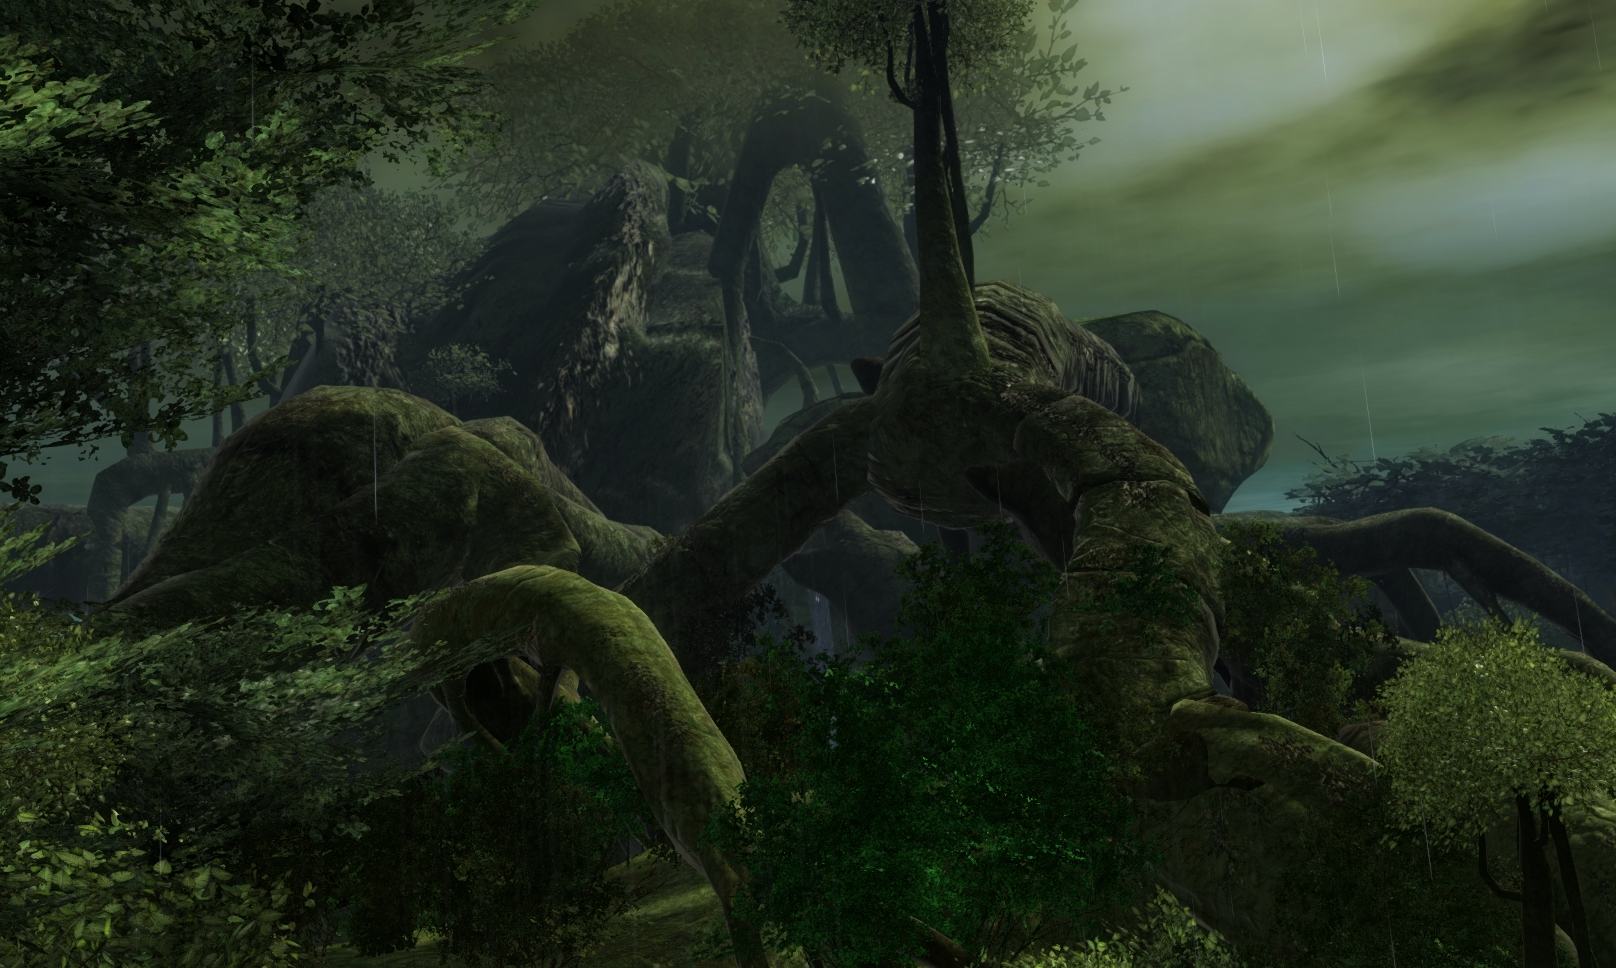 Guild Wars 2 - Vistas in Caledon Forest - 05 Sleive's Inlet